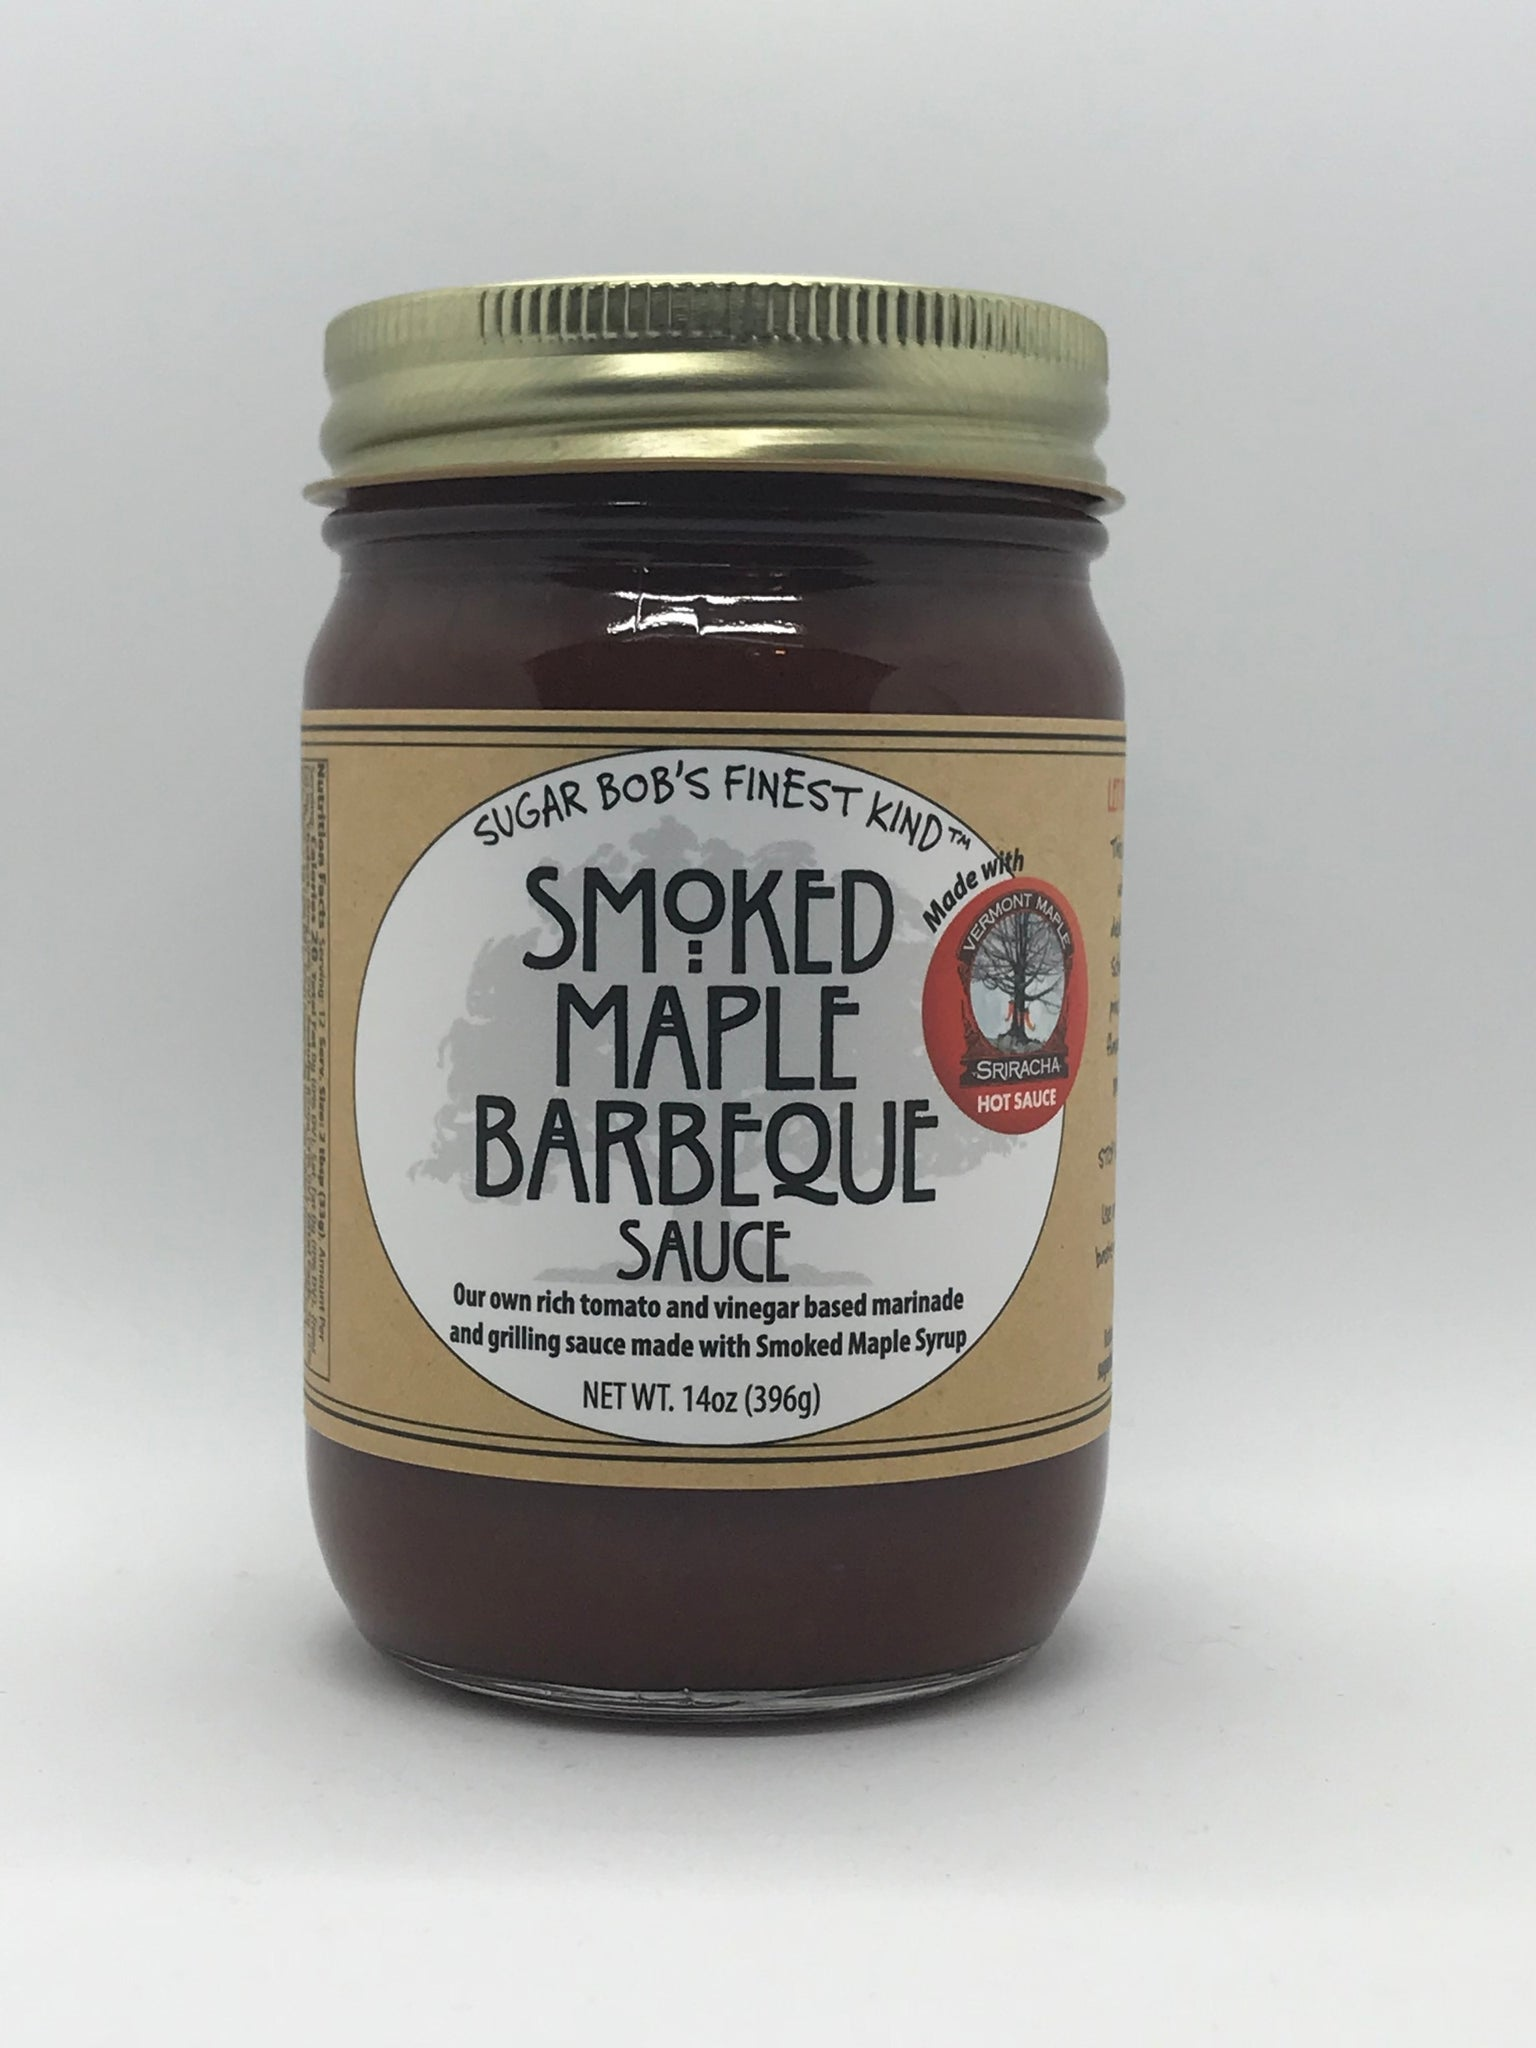 Sugar Bob's Smoked Maple Barbeque Sauce - Small Batch Foody